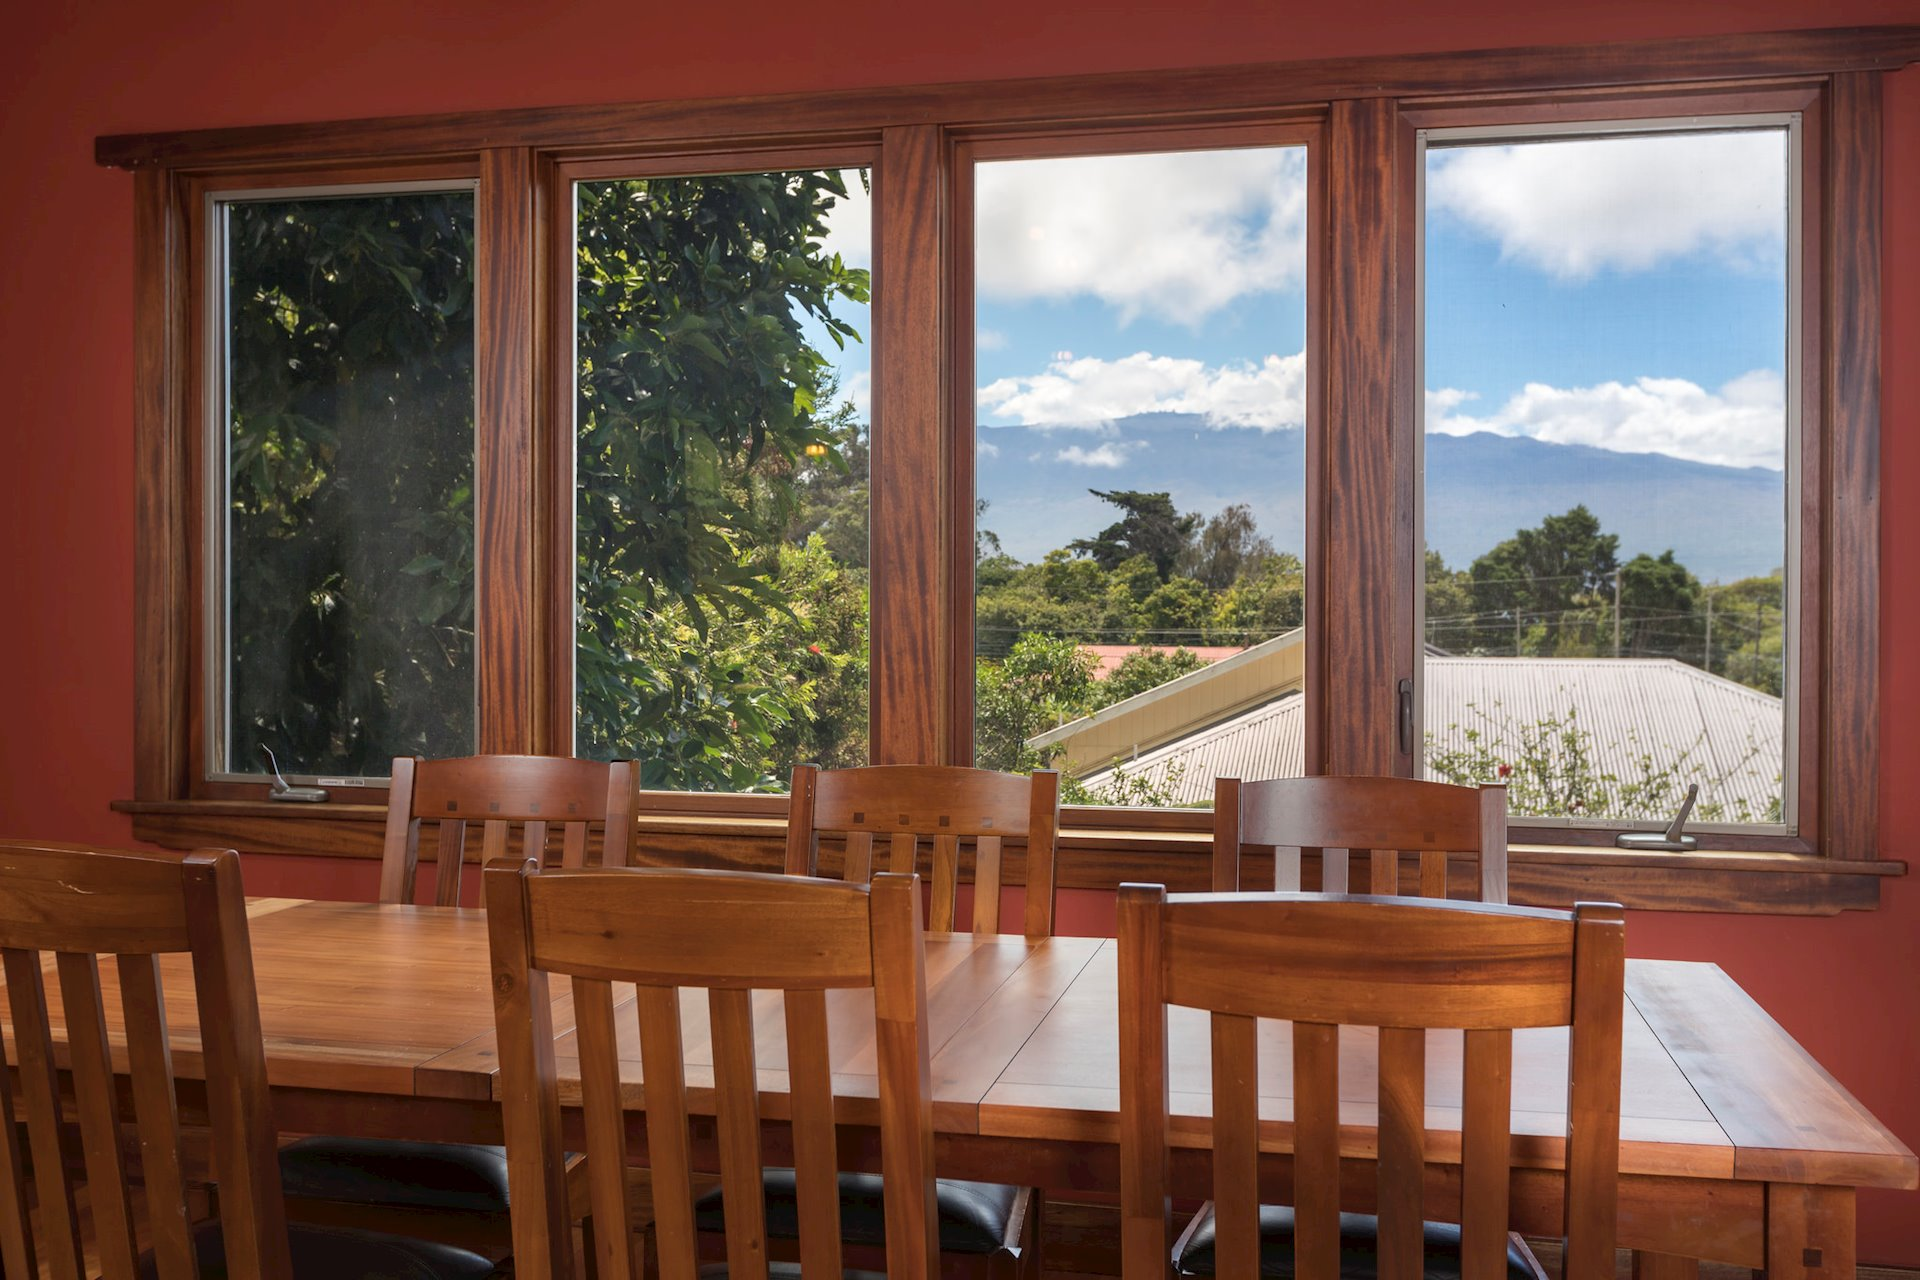 Views of Mauna Kea from the dining and Master Bedroom.